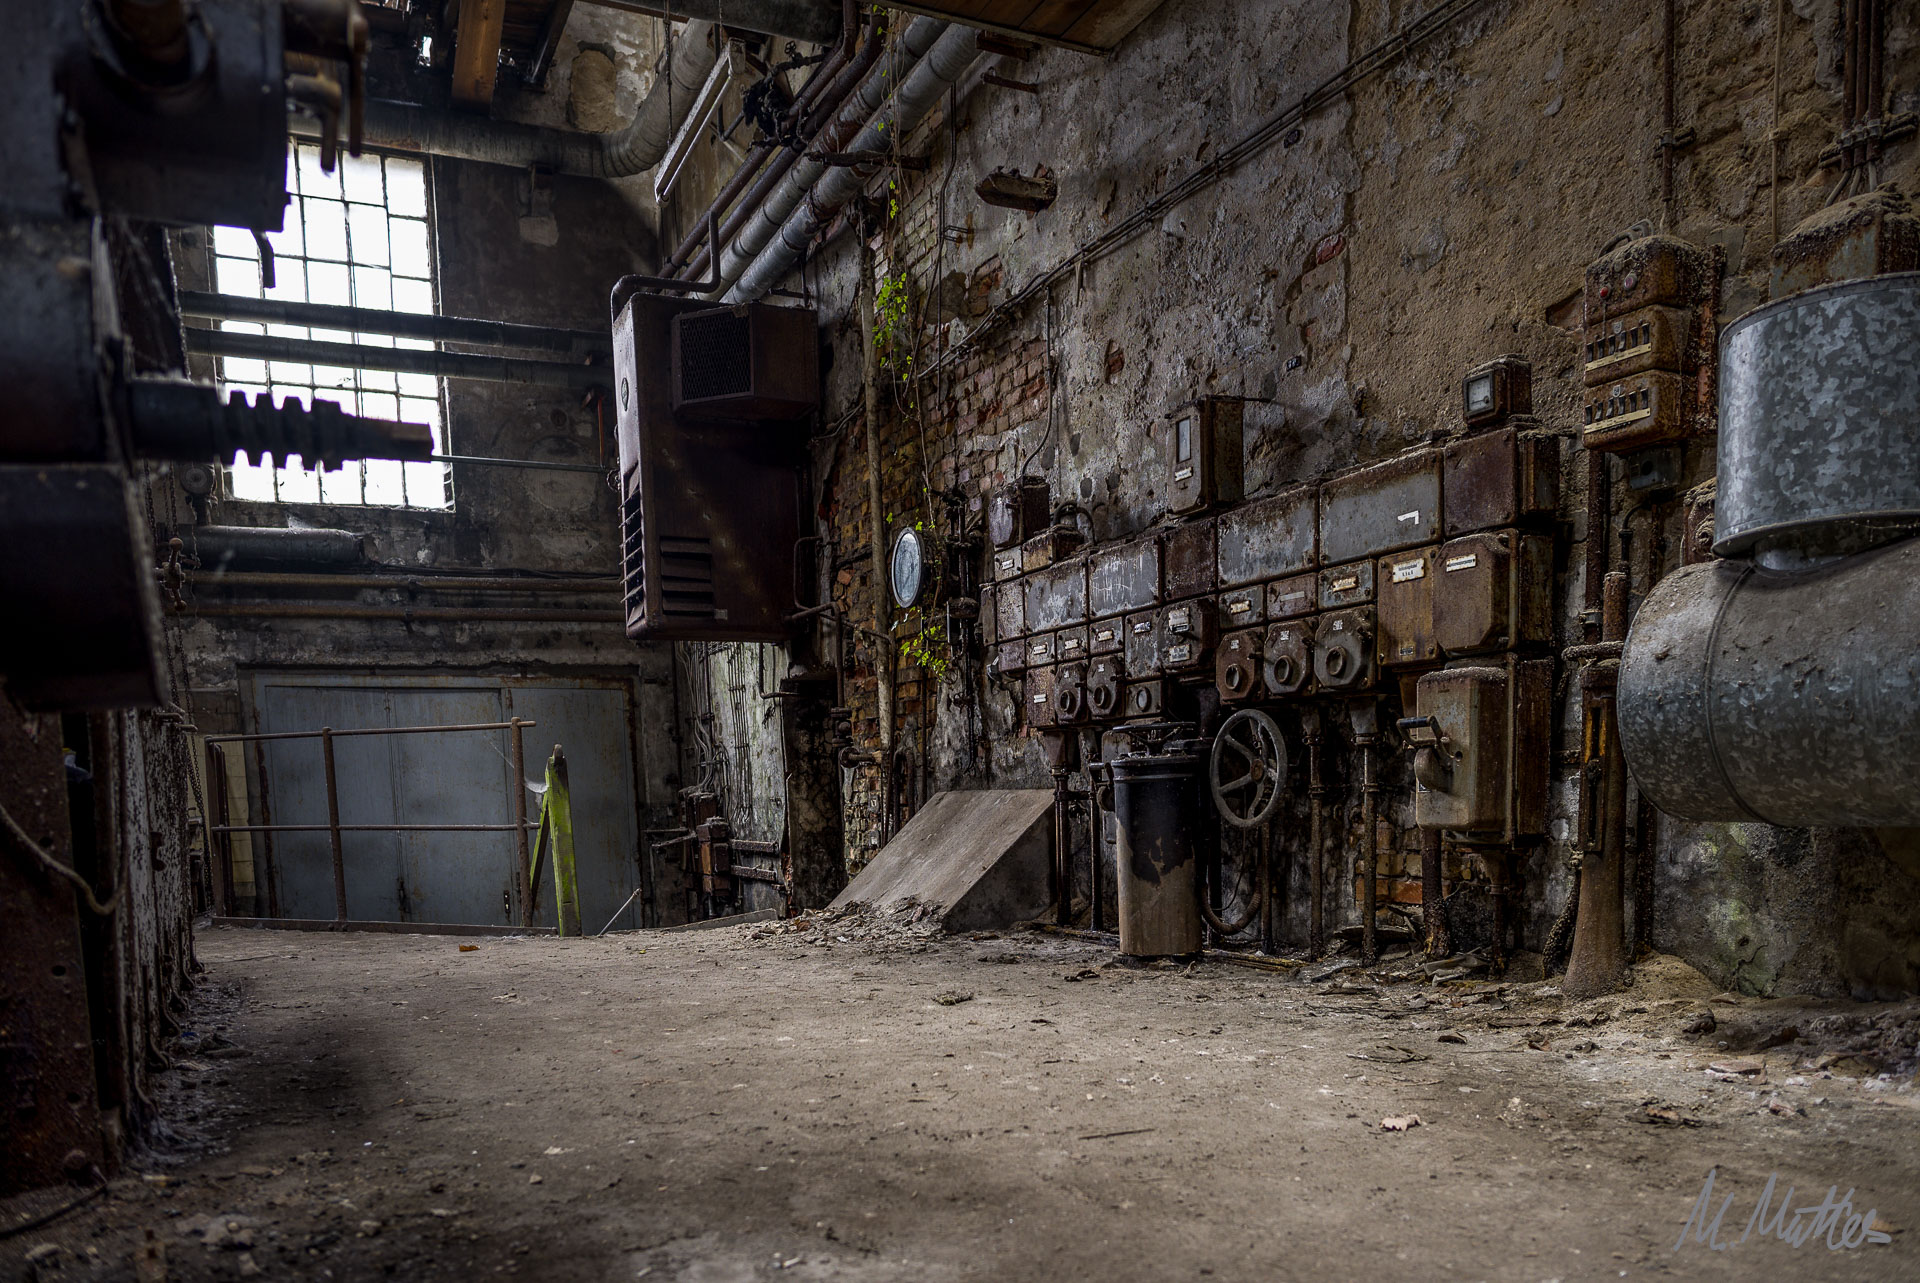 Lostplaces-Galerie